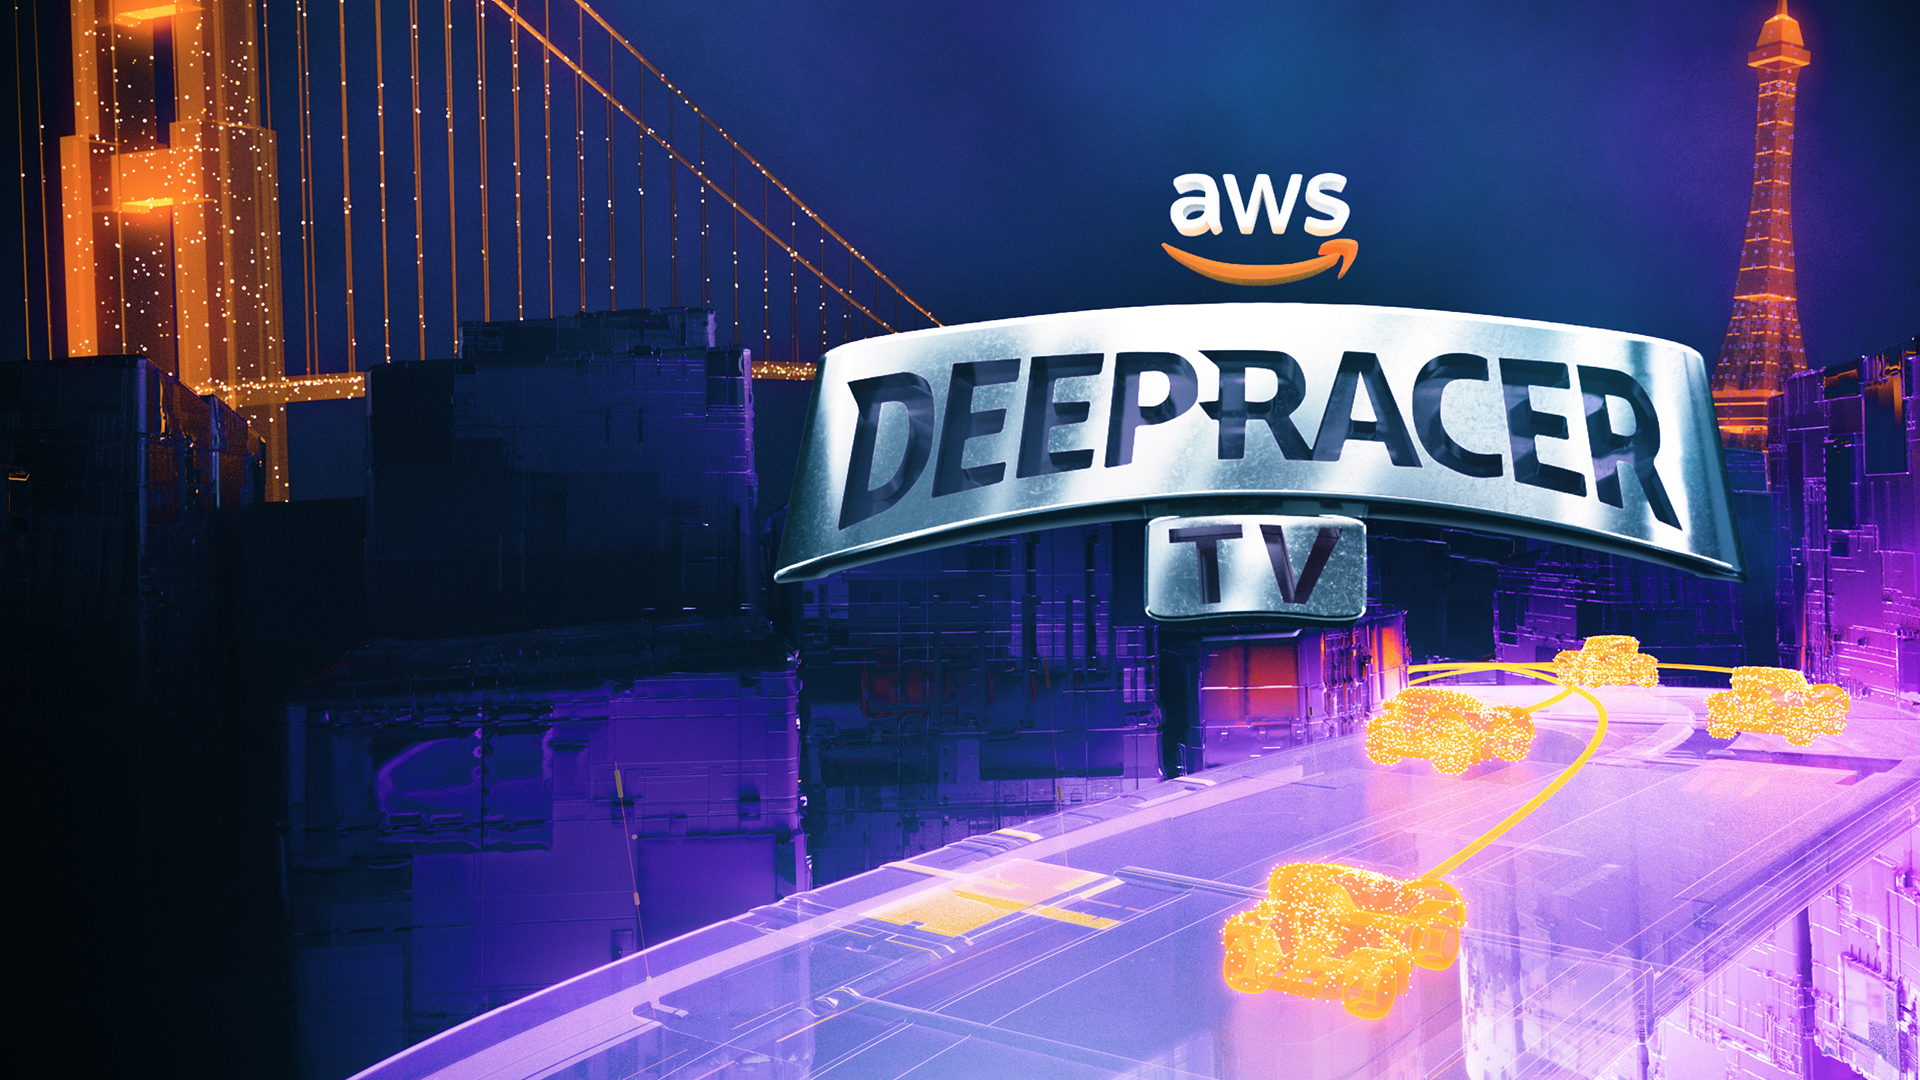 AWS DeepRacer TV - Season 1